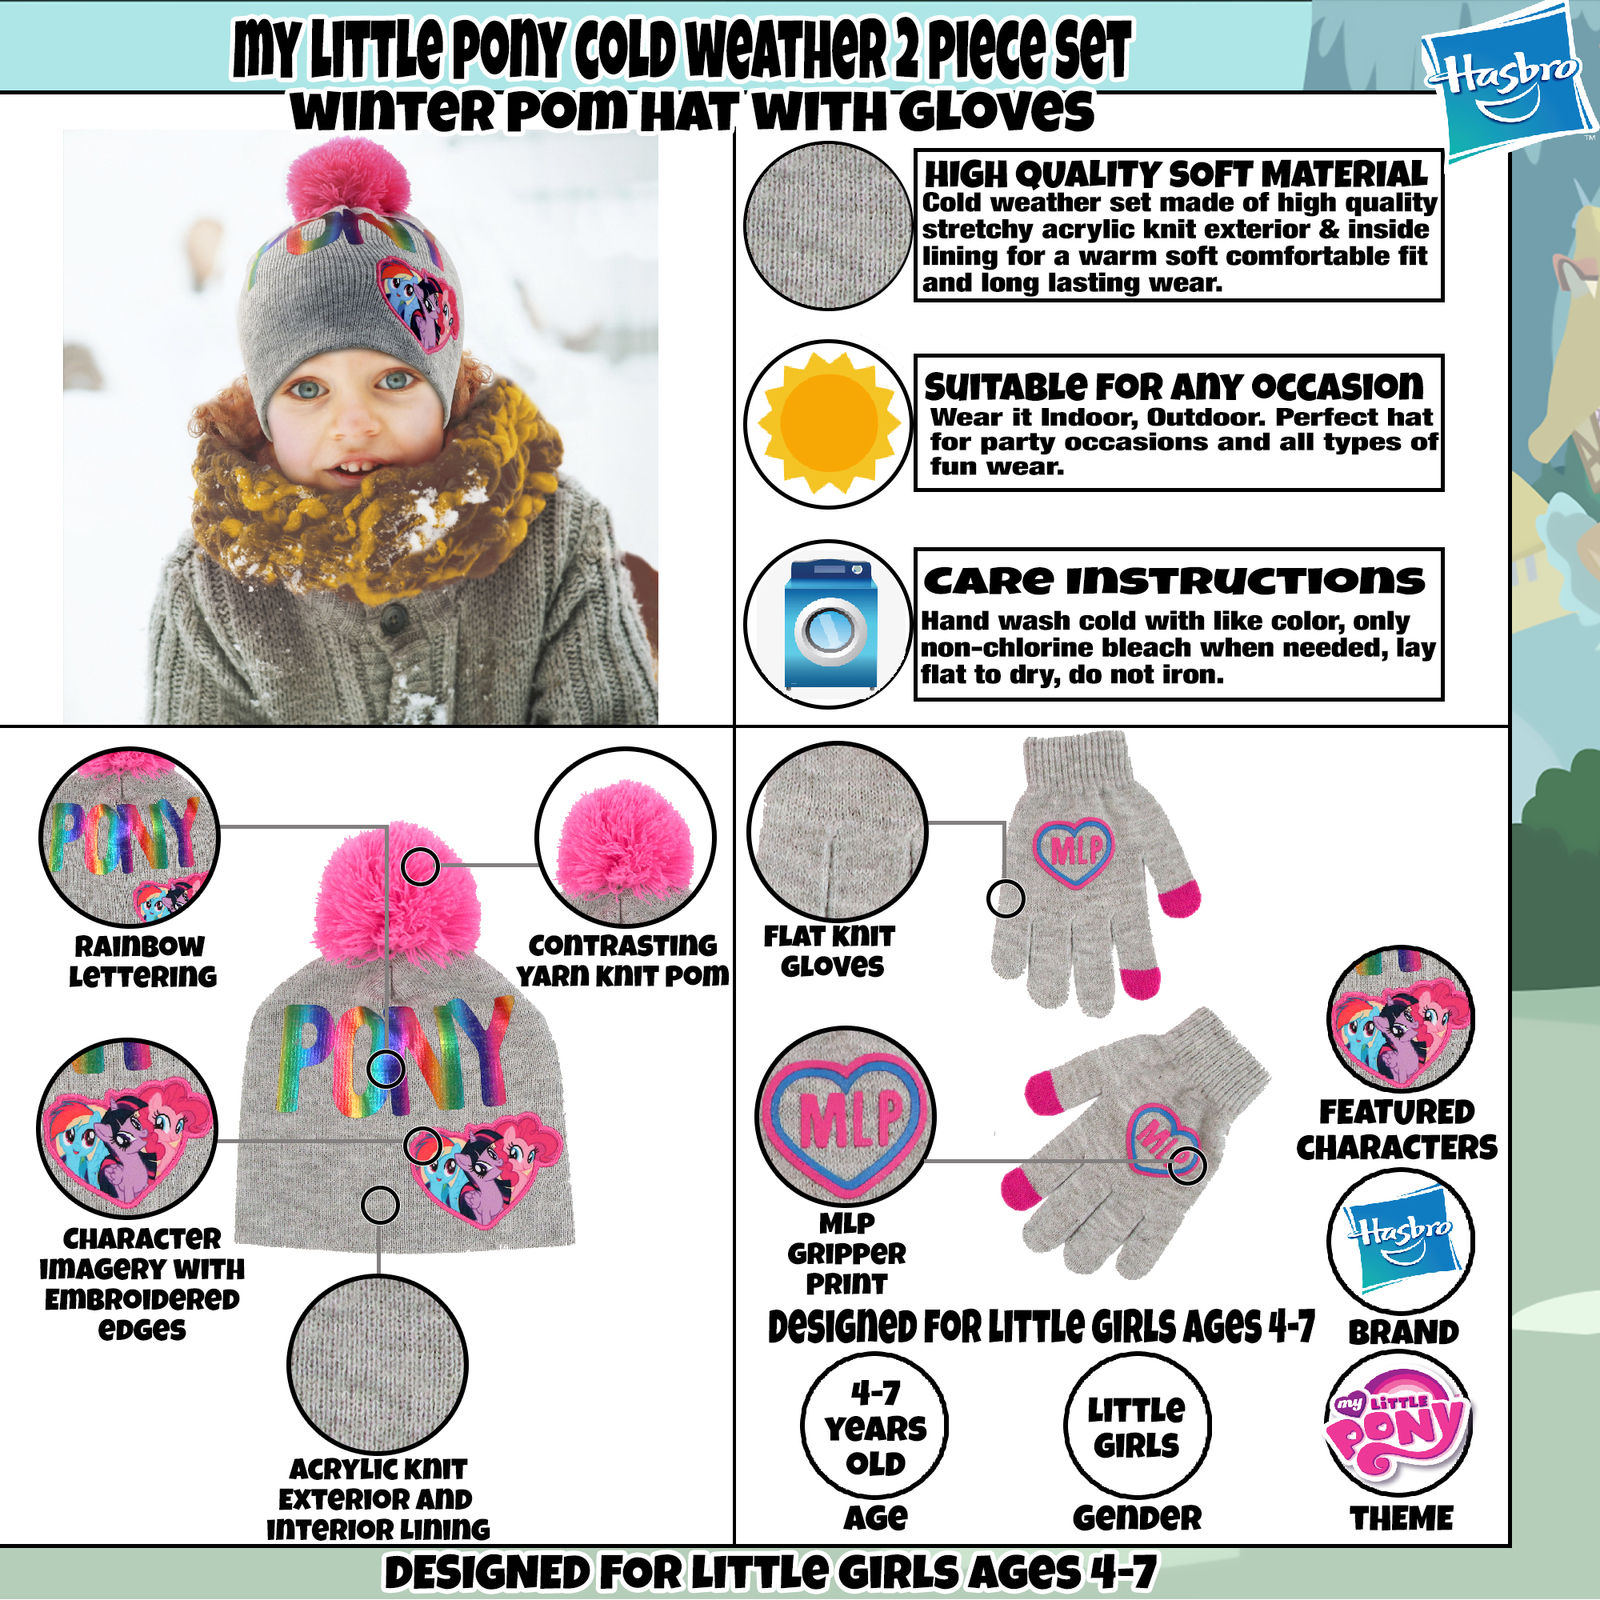 4a7213e0fa619 Hasbro - Hasbro My Little Pony Hat and Gloves Cold Weather Set ...